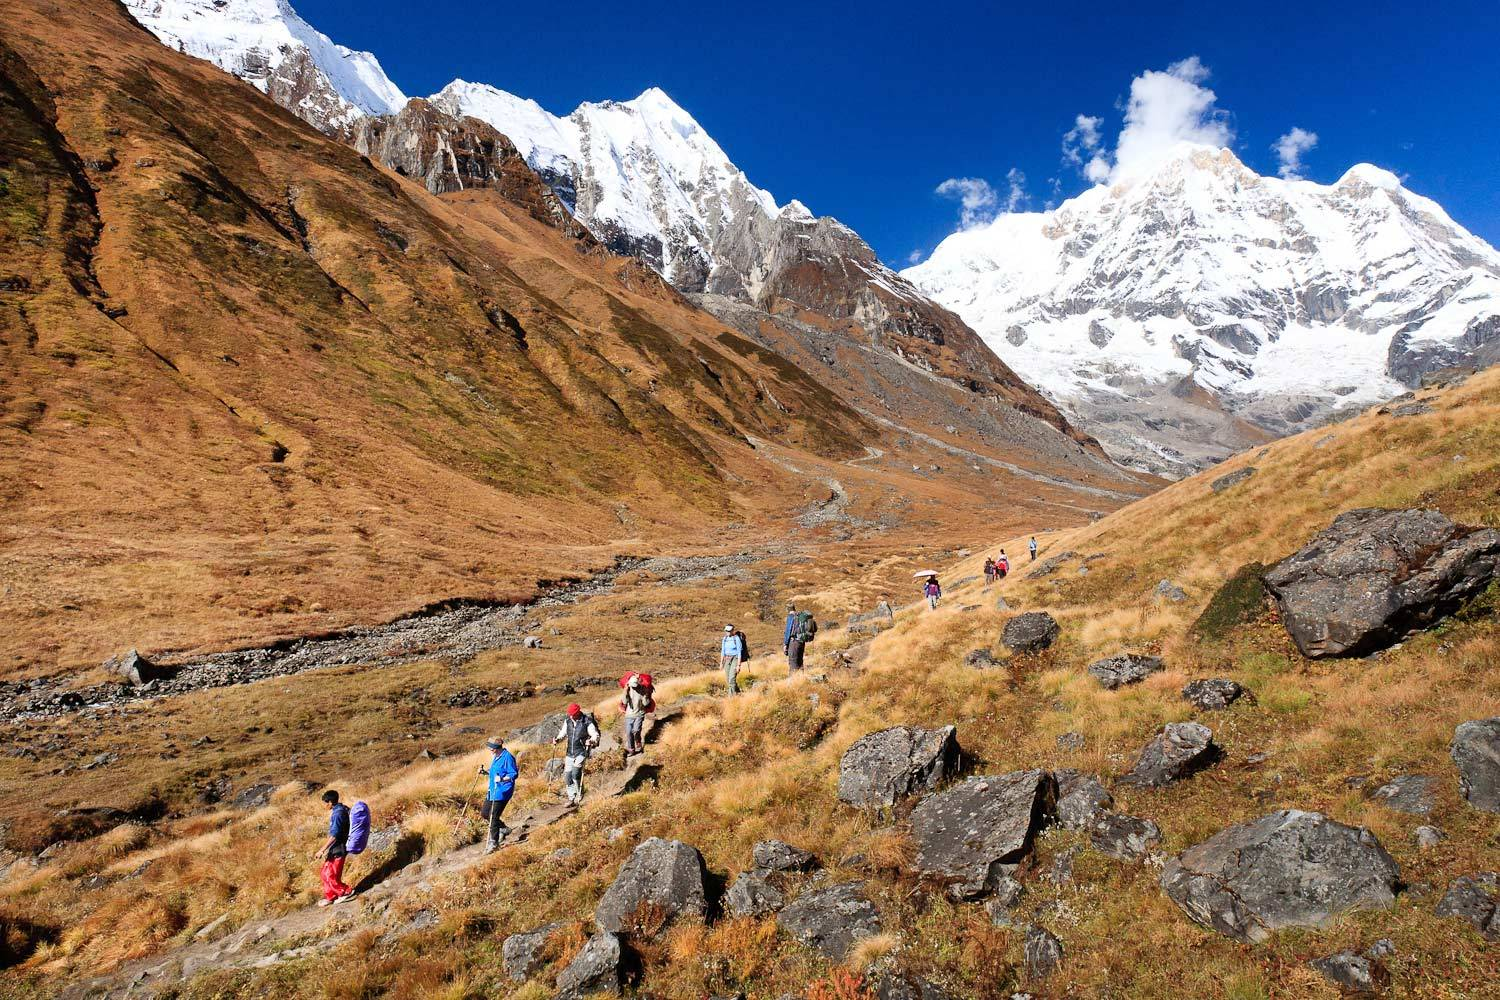 Annapurna Circuit Trek Compare Gap Prices And Reviews